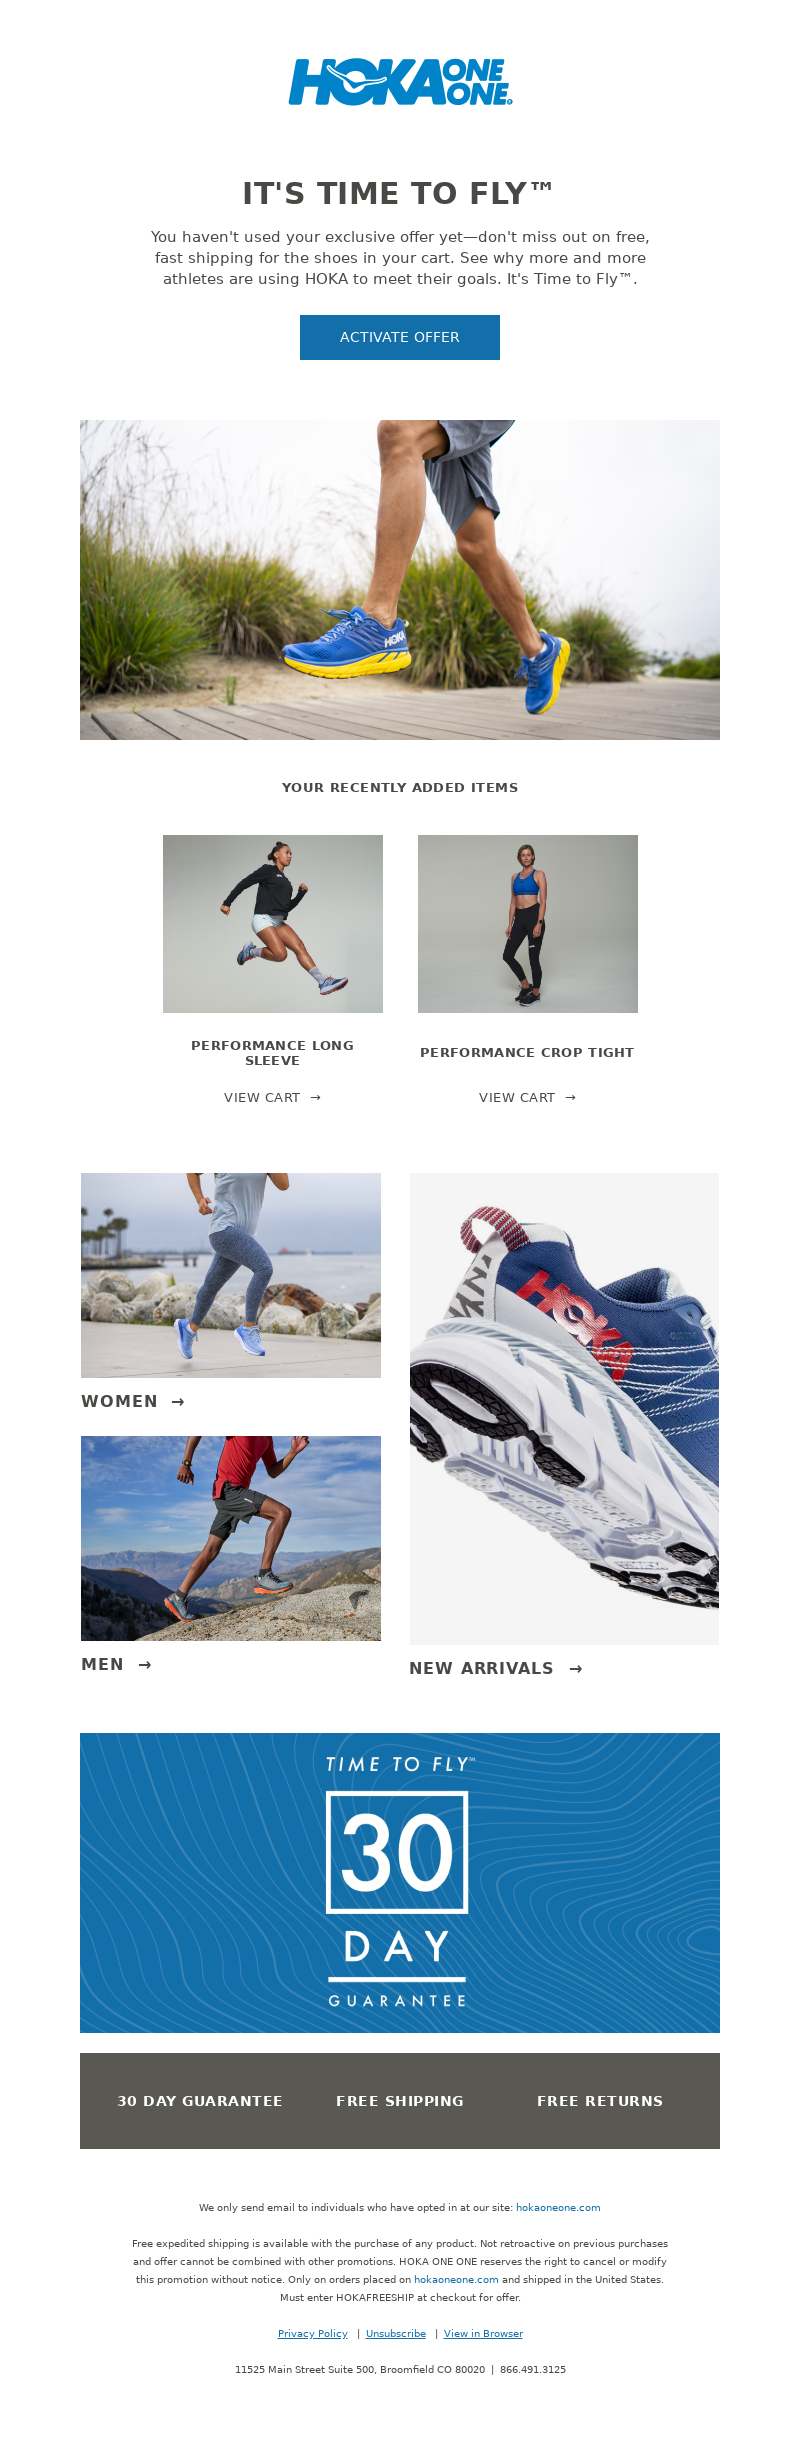 HOKA ONE ONE - Last chance: don't miss out on free expedited shipping